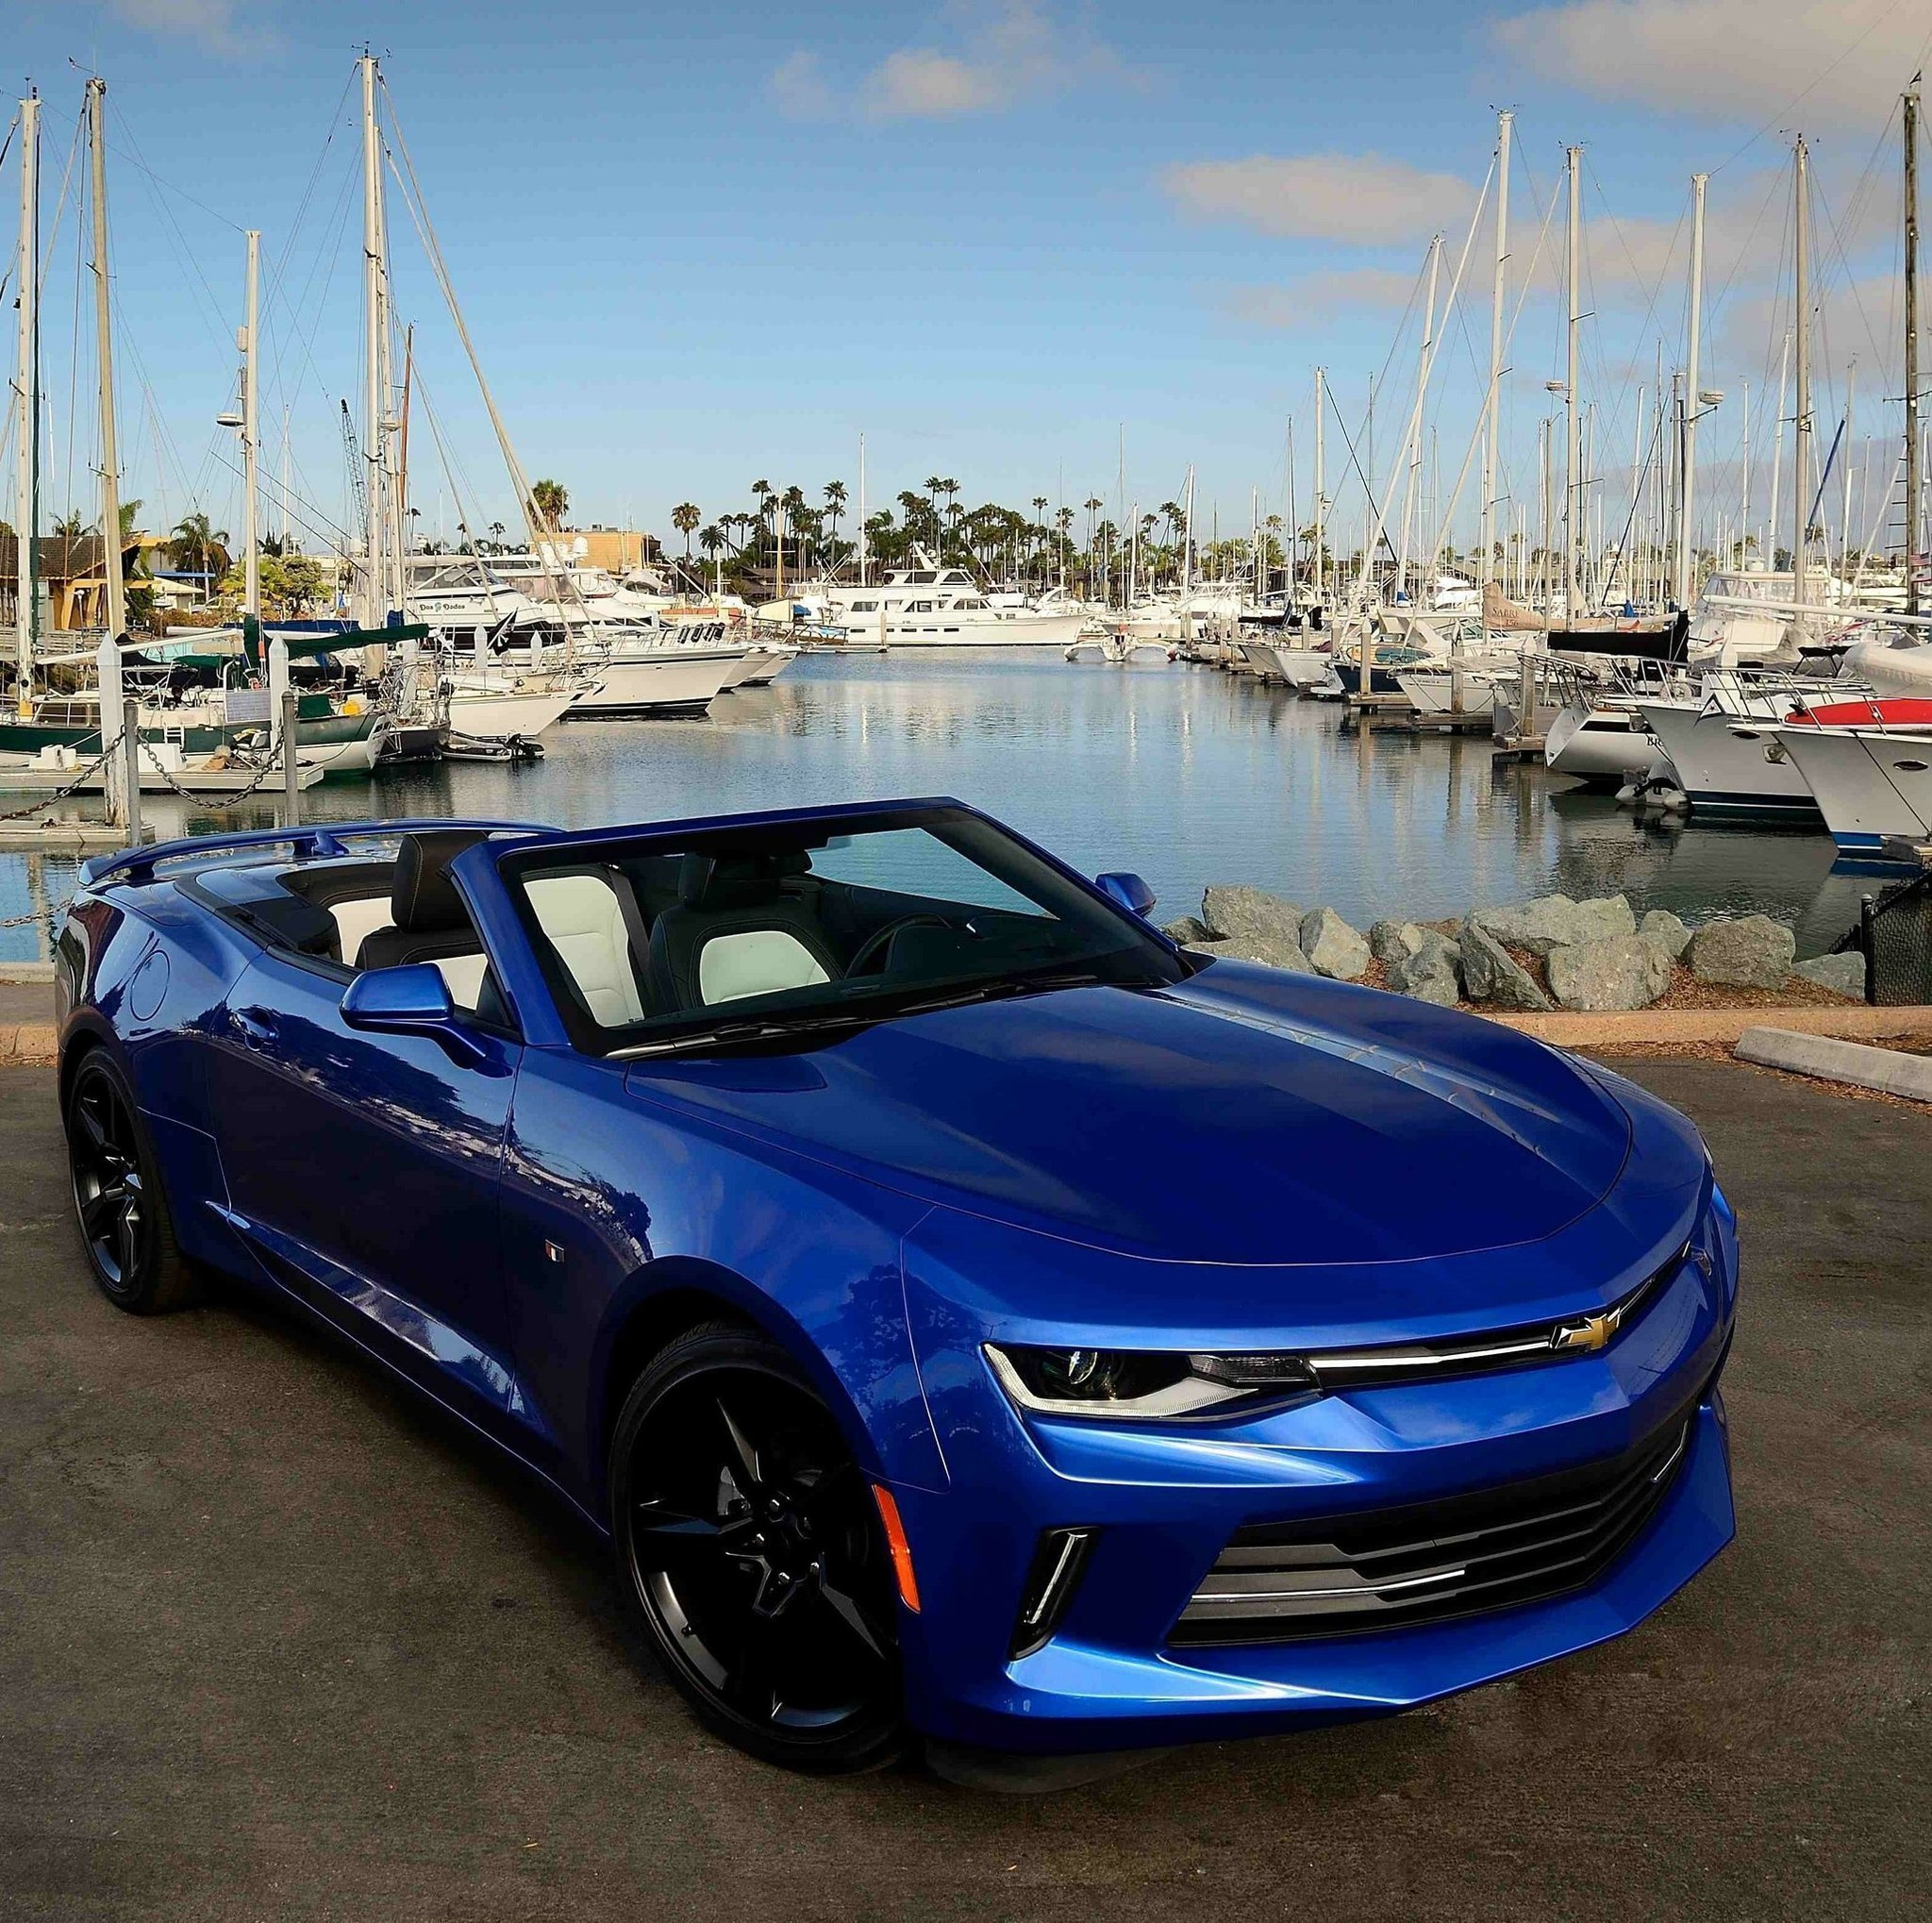 The 2016 Chevrolet Camaro Convertible Is A Dramatic Striptease With Three Engine Choices Two Transmissions And Slick Folding Lined Top That Can